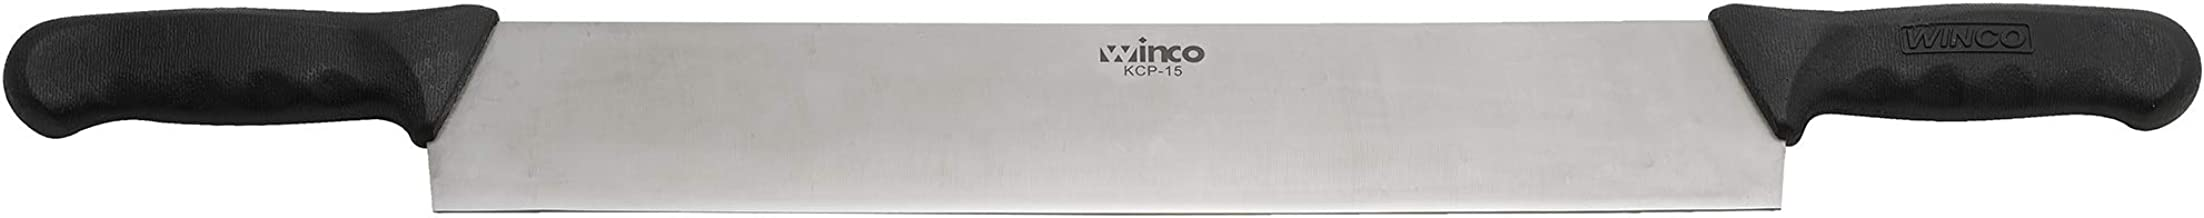 "Winco KCP-15 15"" Cheese Knife With Double Black Polypropylene Handles-KCP-15"